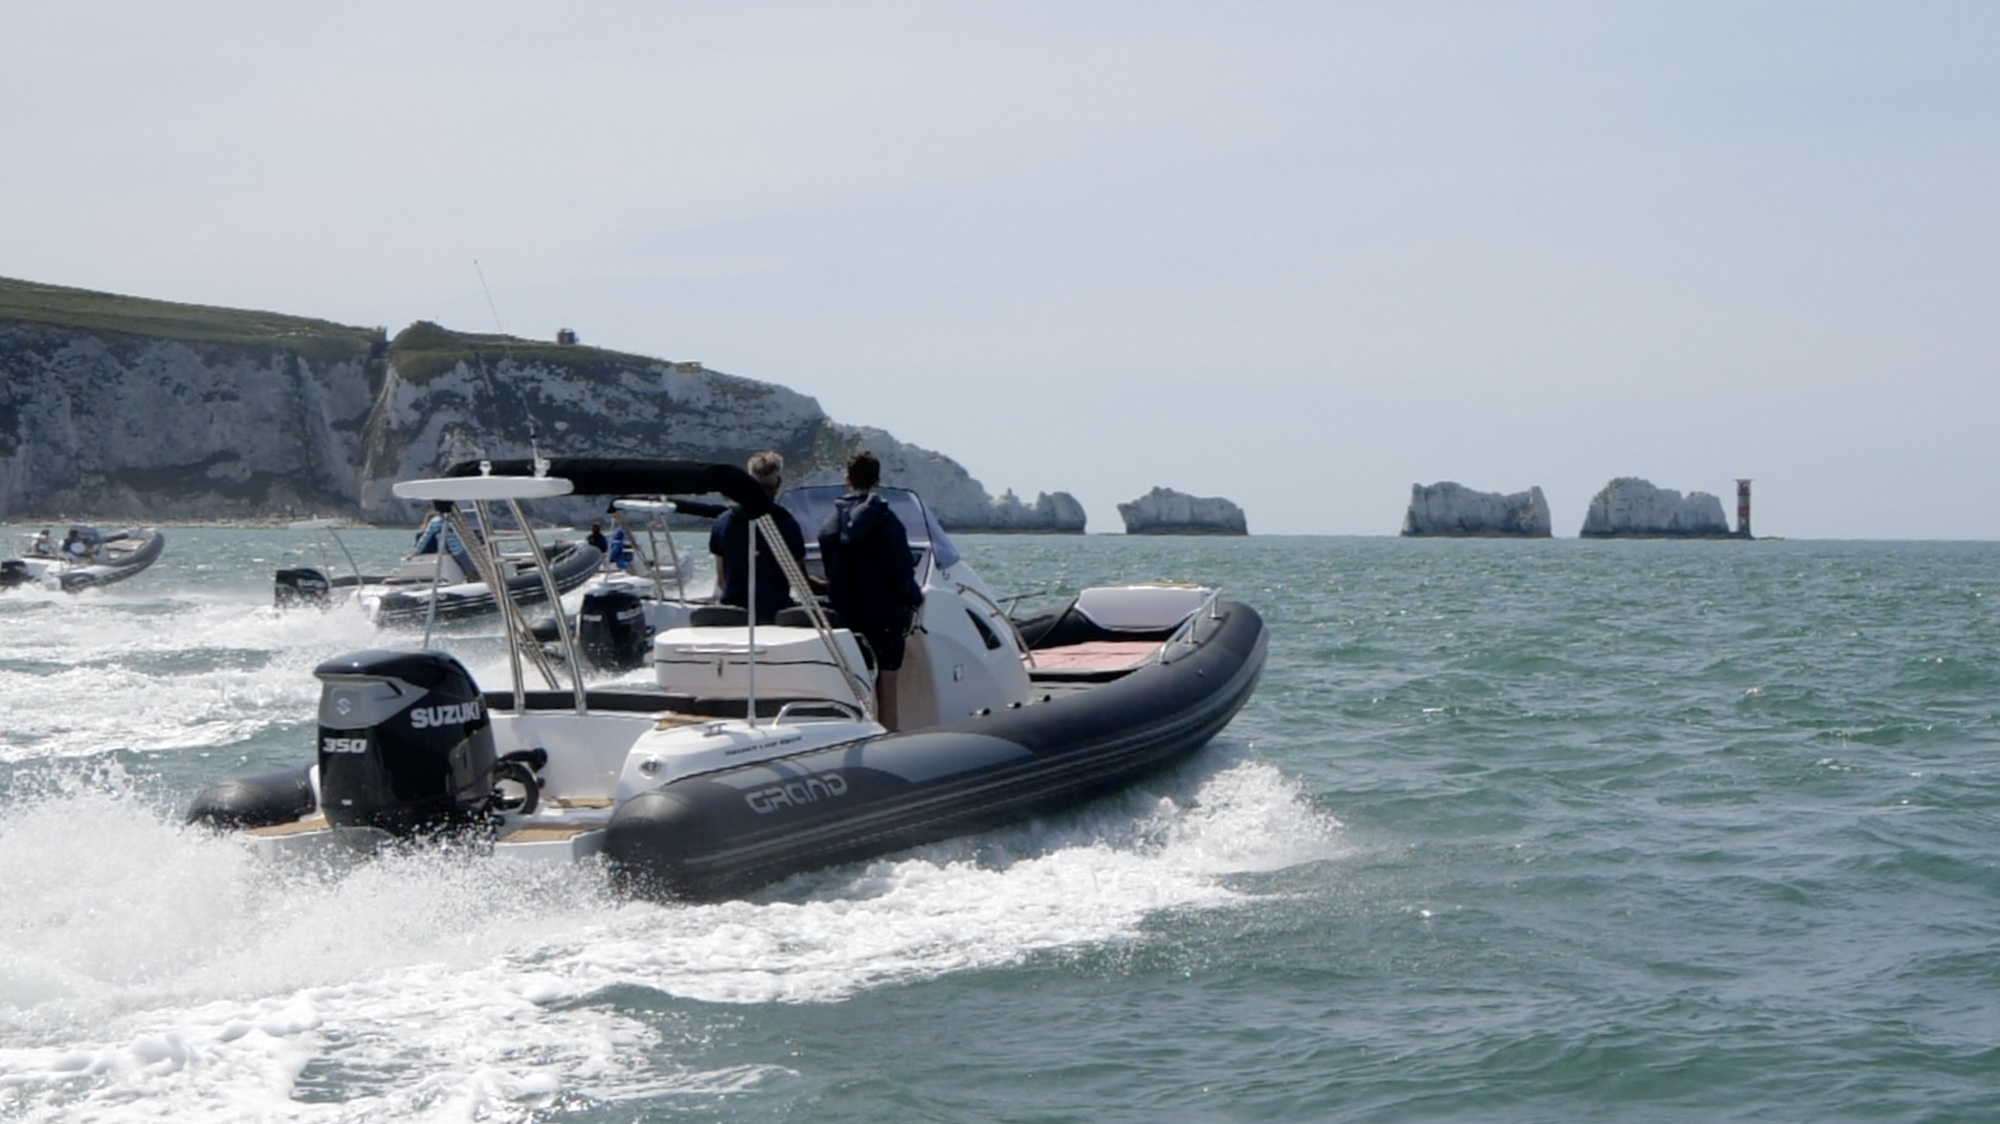 GRAND RIBs at the Needles